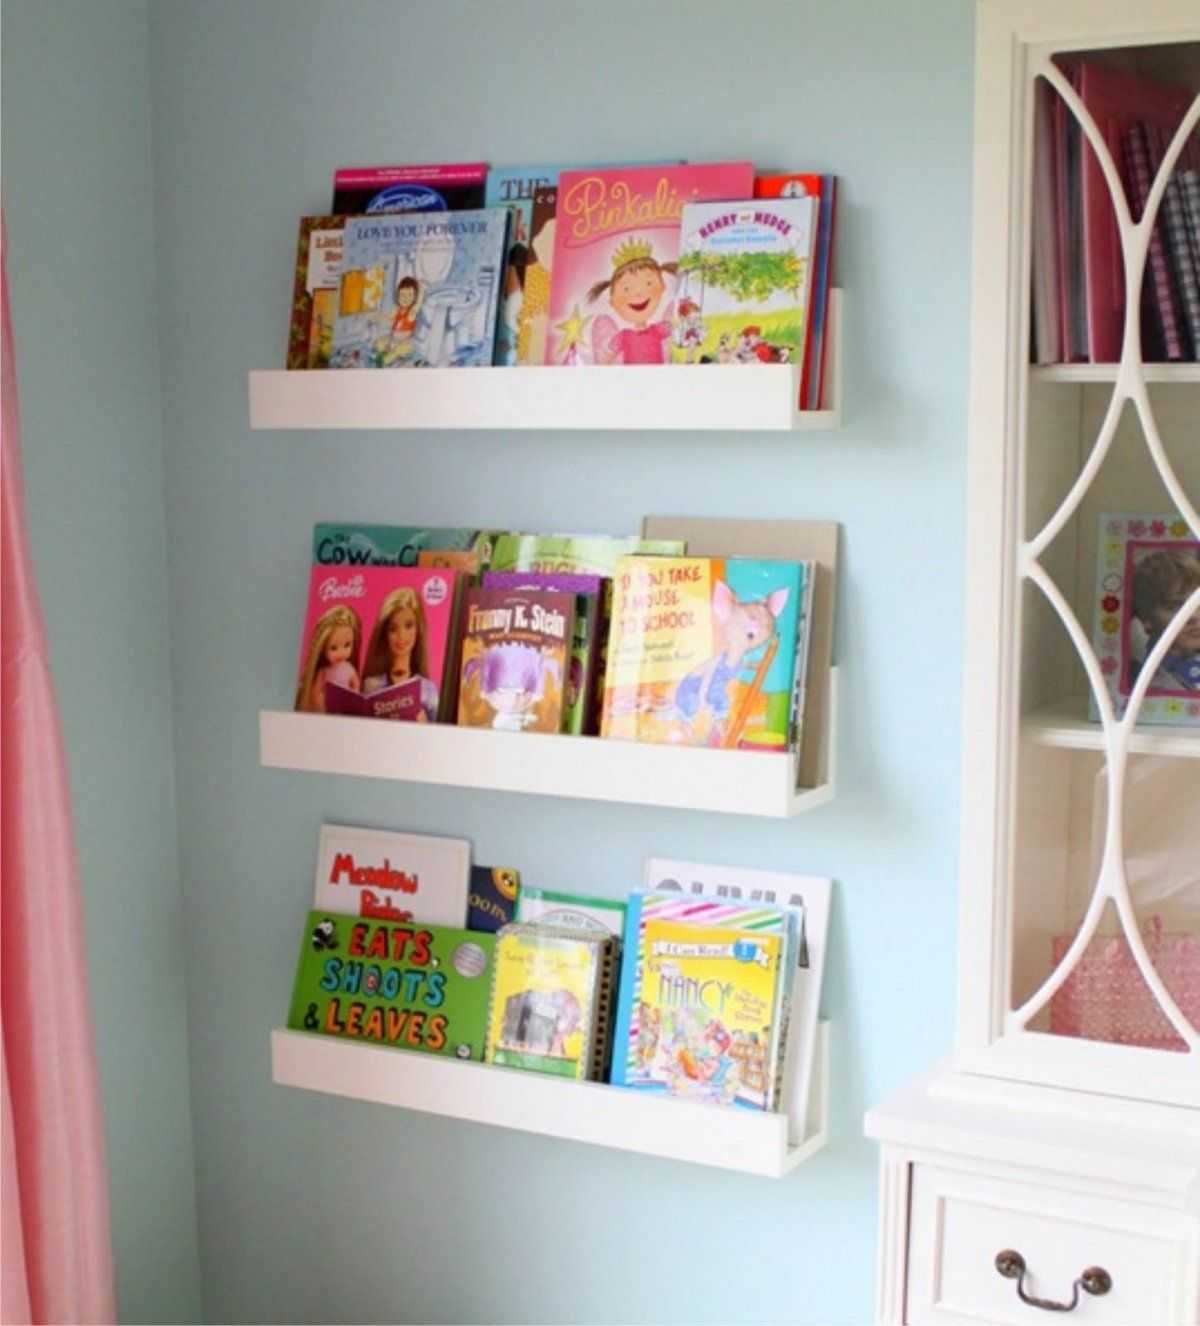 Diy white minimalist wall mounted book shelves for little Bookshelves in bedroom ideas